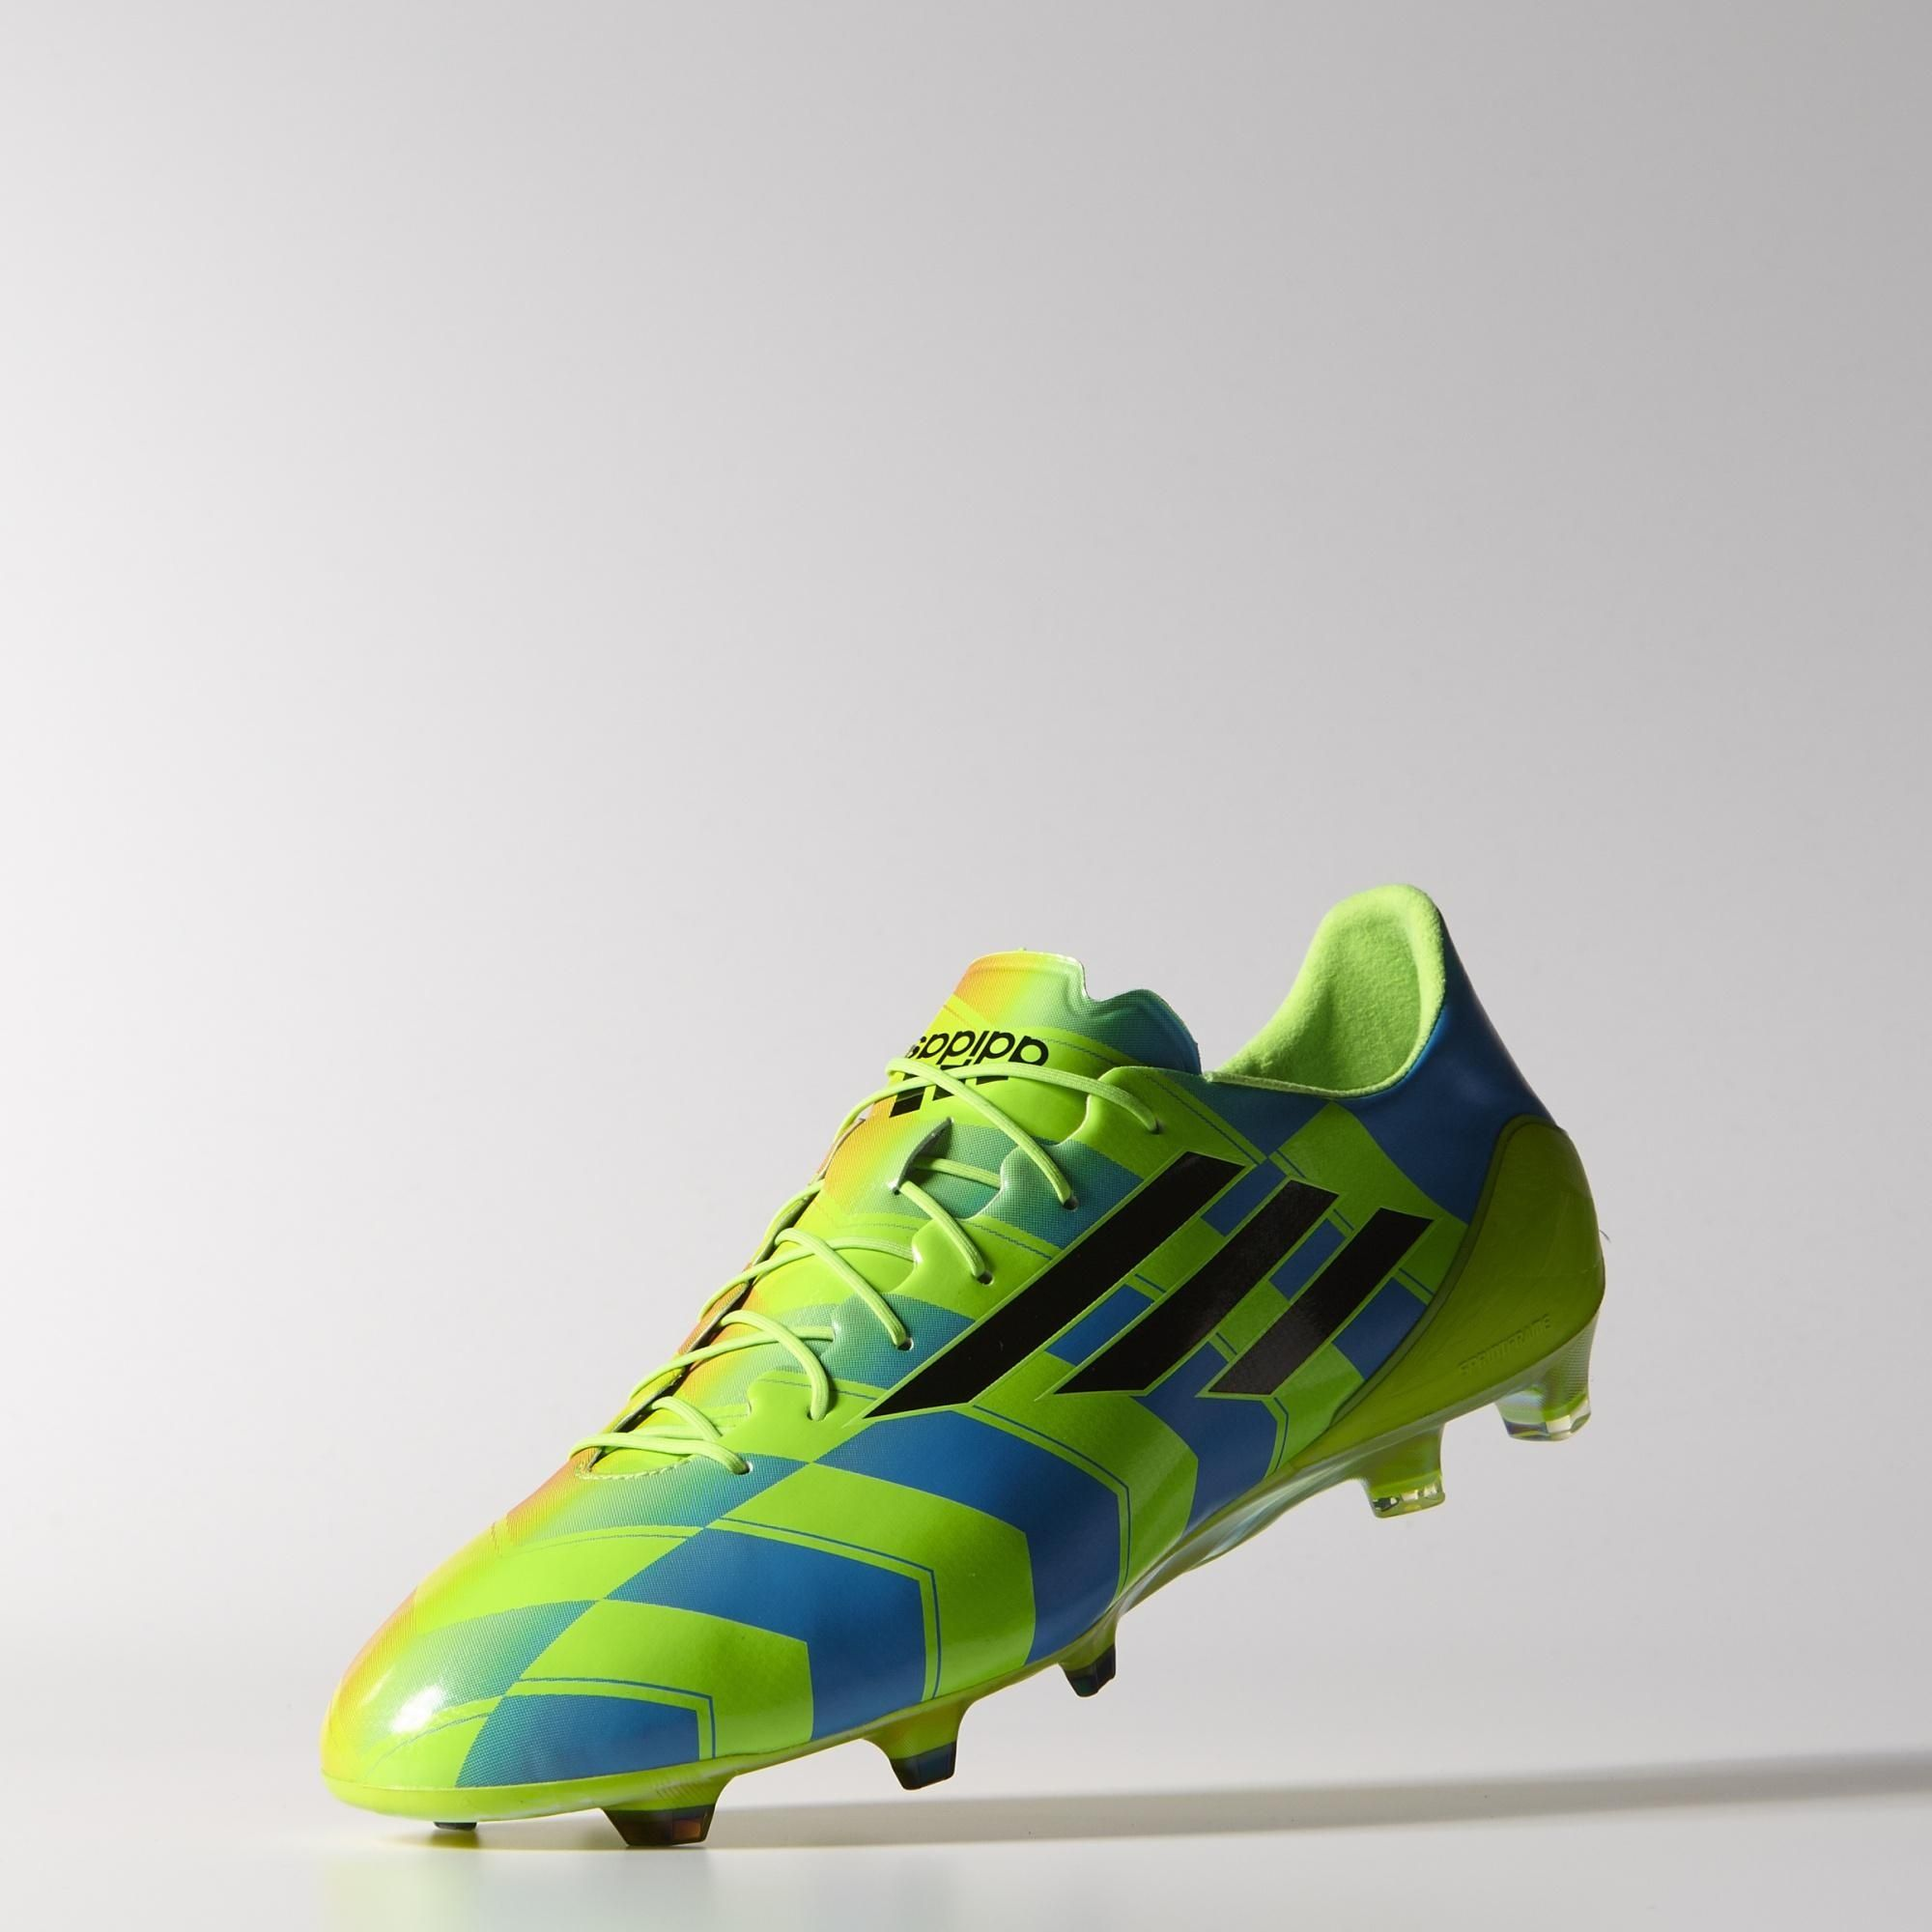 30d2c041995 ... shoes f50 adizero sg white rich blue solar green e8cdd cfc66  coupon  code click to enlarge image adidas f50 adizero crazylight trx fg 4749a 3c4b3